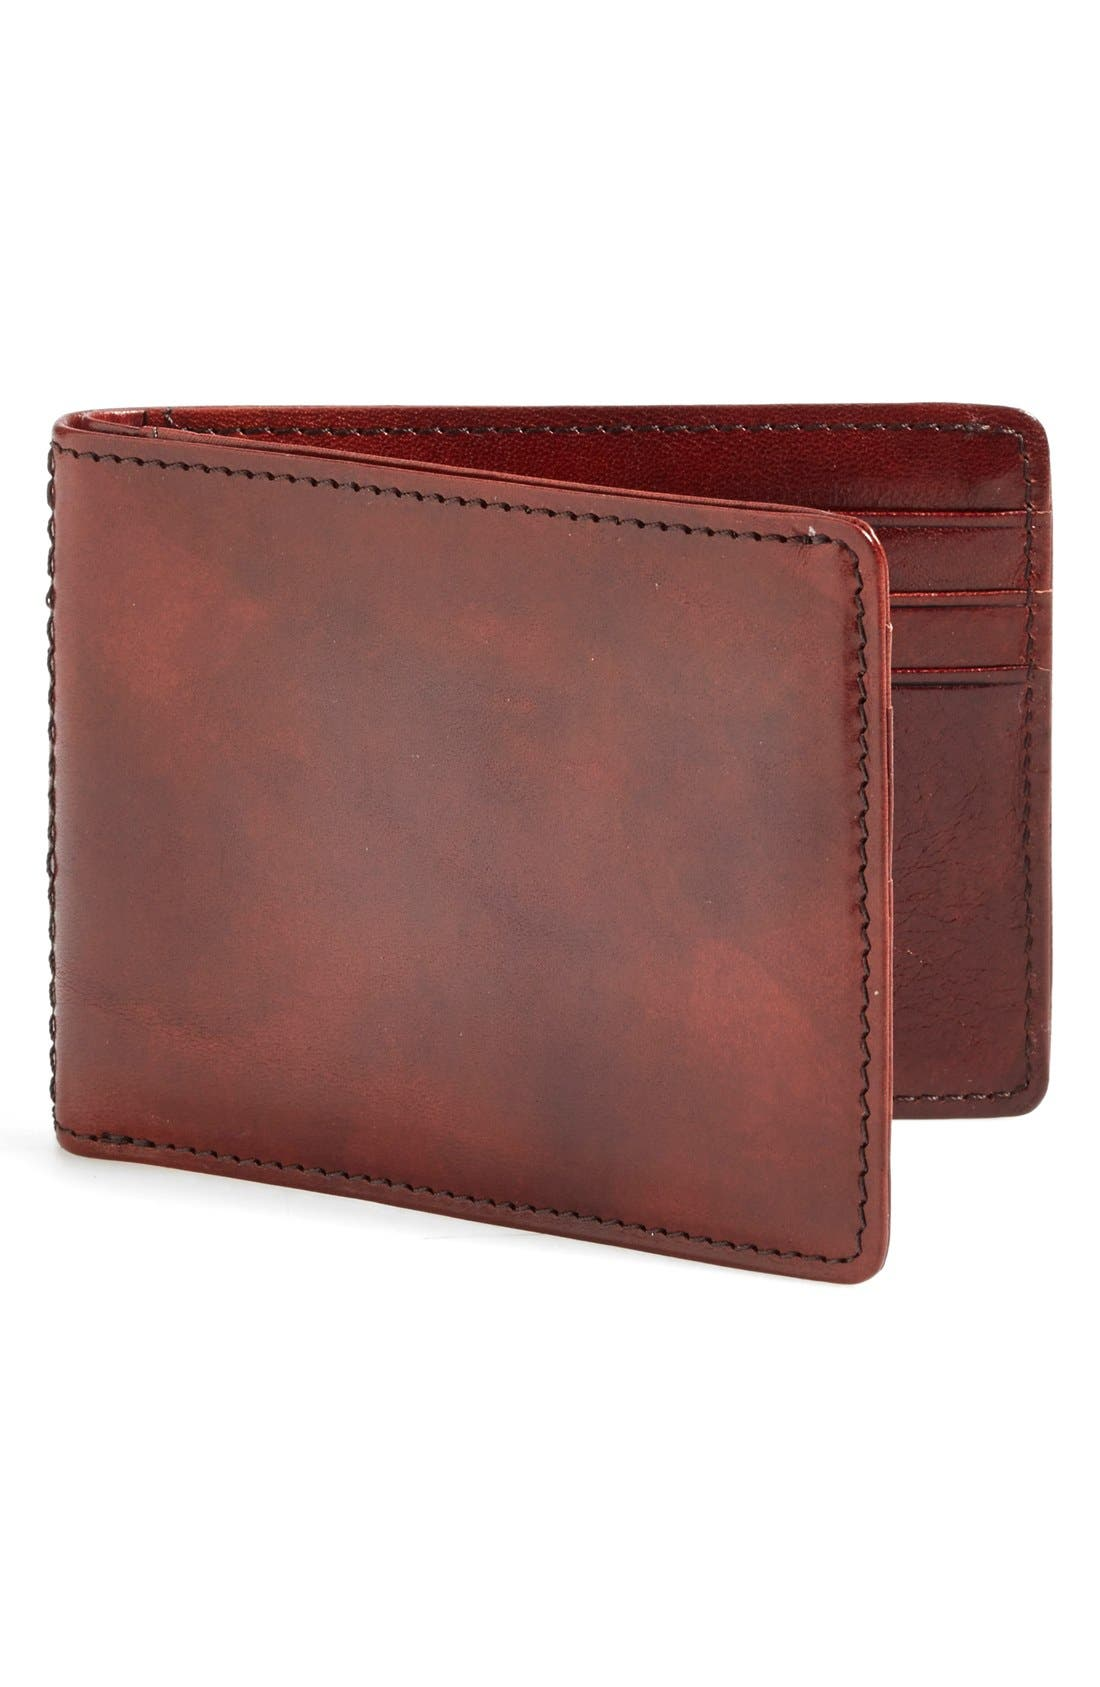 Alternate Image 1 Selected - Bosca Small Bifold Wallet